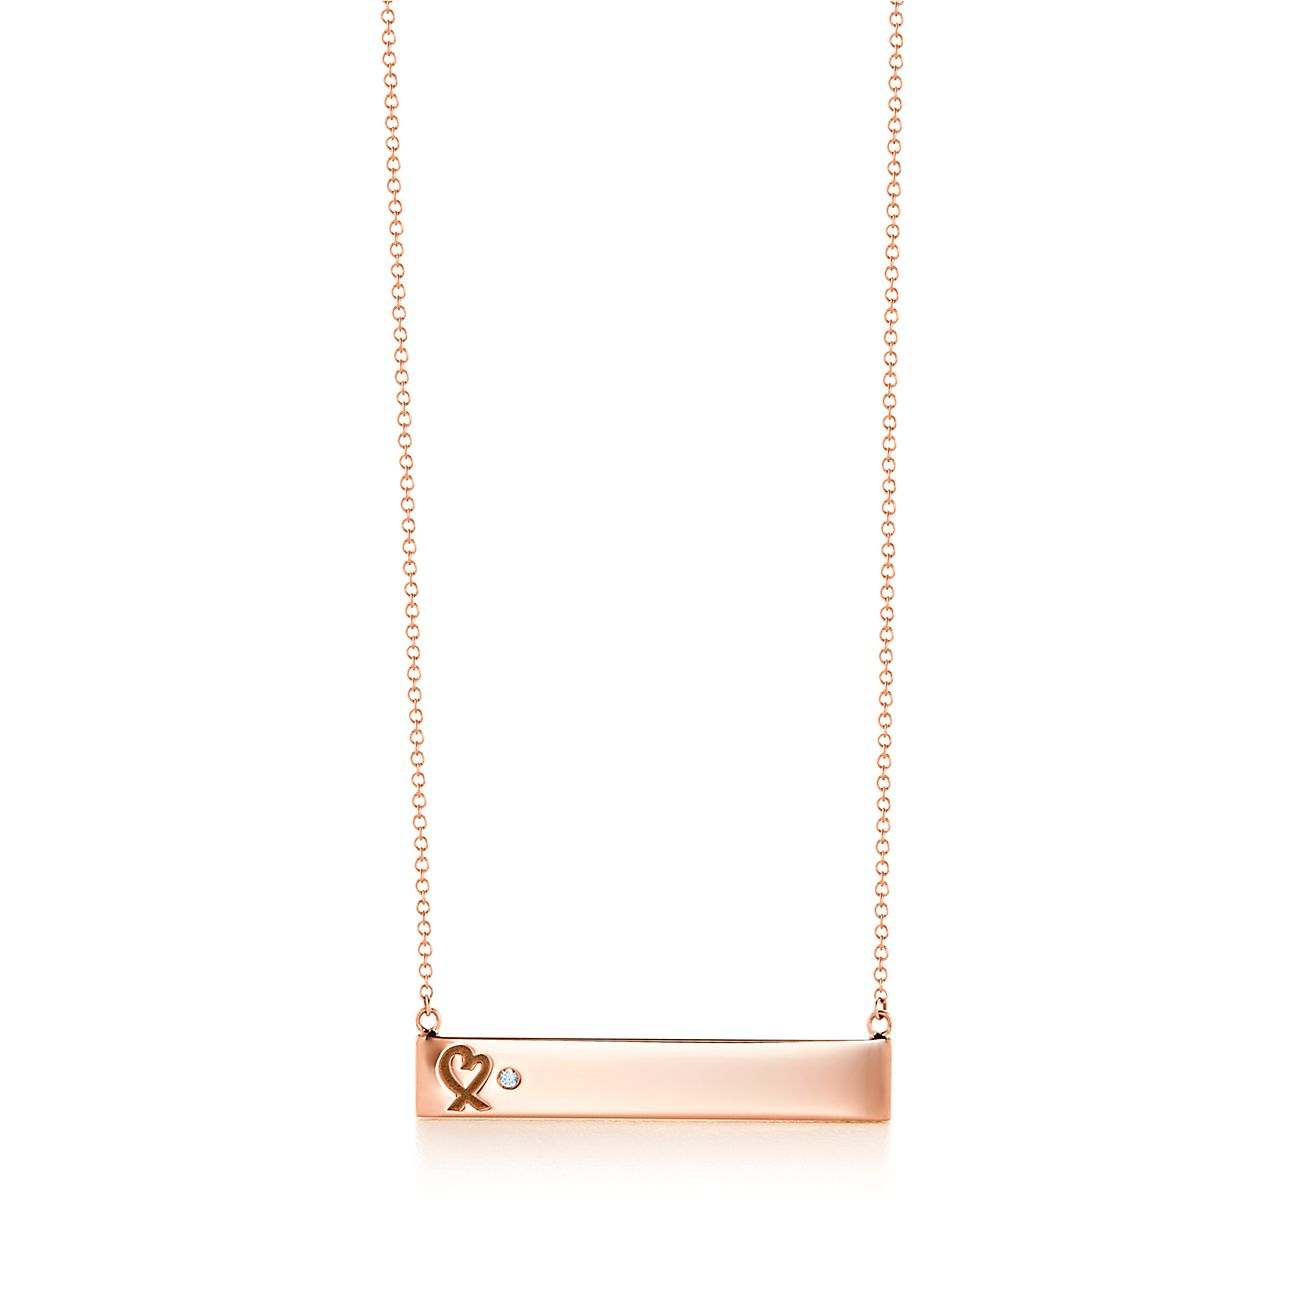 Paloma picasso loving heart bar pendant in 18k rose gold with a paloma picassoloving heart bar pendant aloadofball Image collections